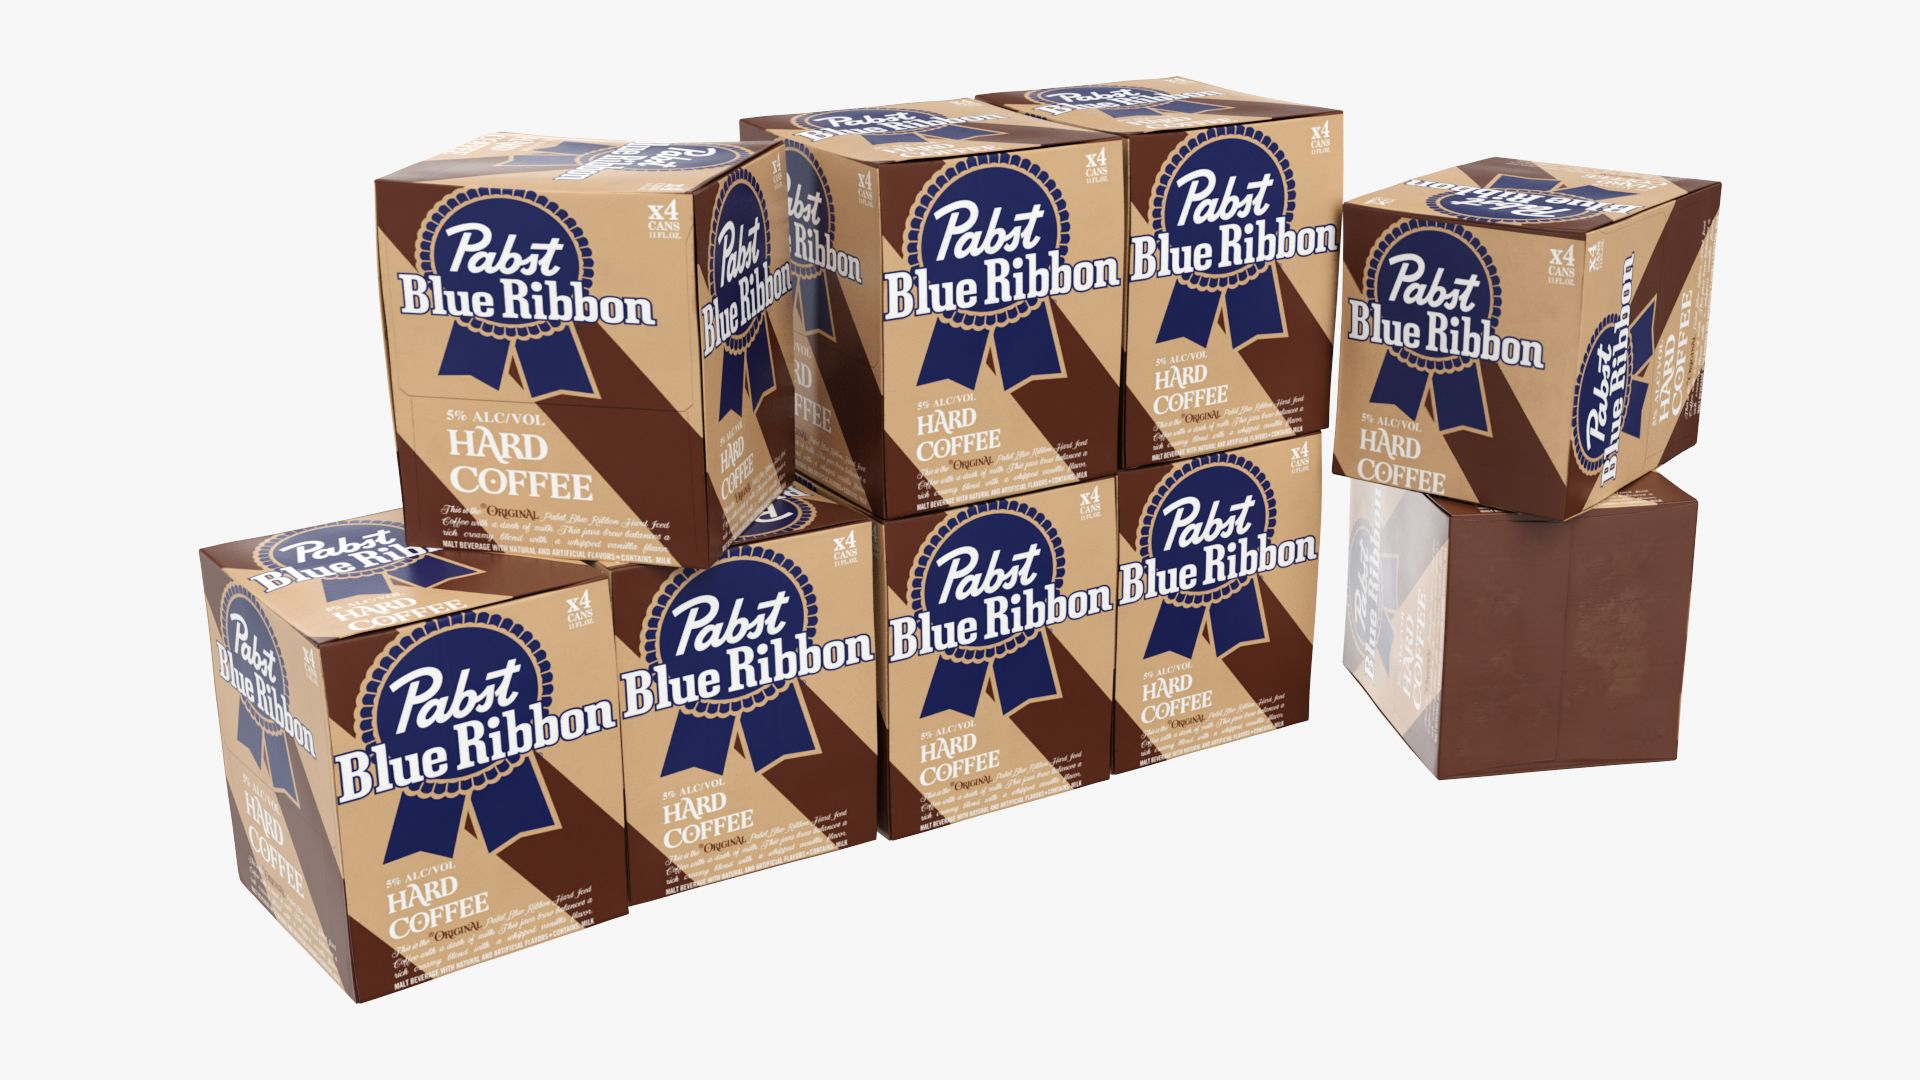 PBR 3D Model Available Turbosquid Pabst blue ribbon